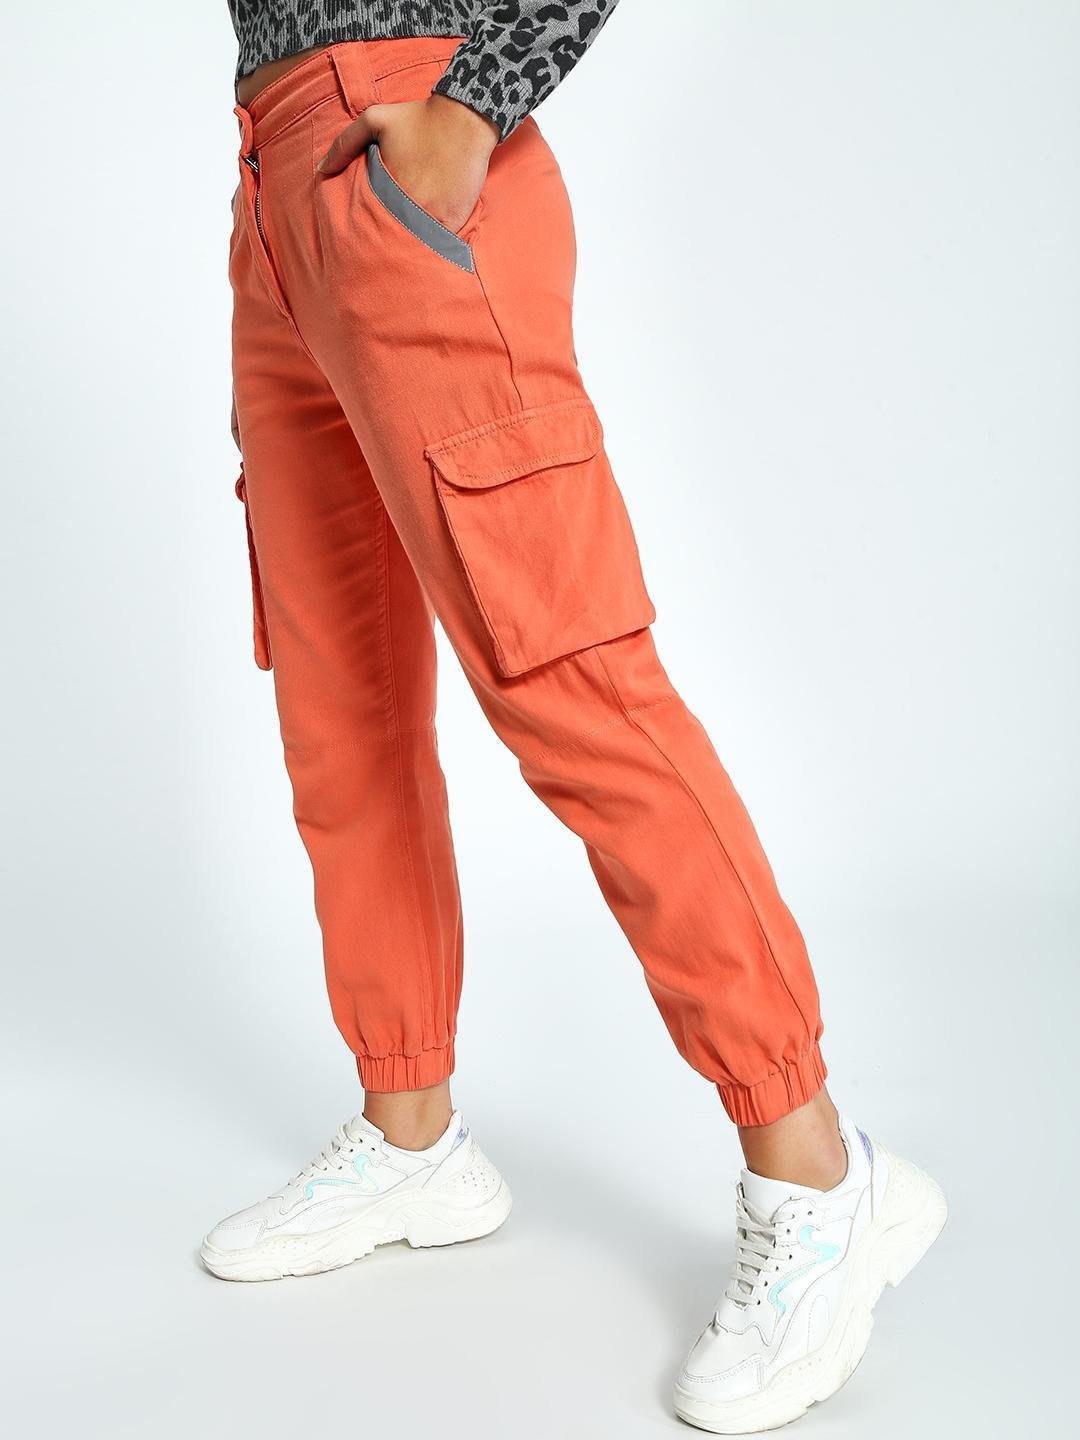 K Denim Orange KOOVS Reflective Utility Pocket Denim Joggers 1